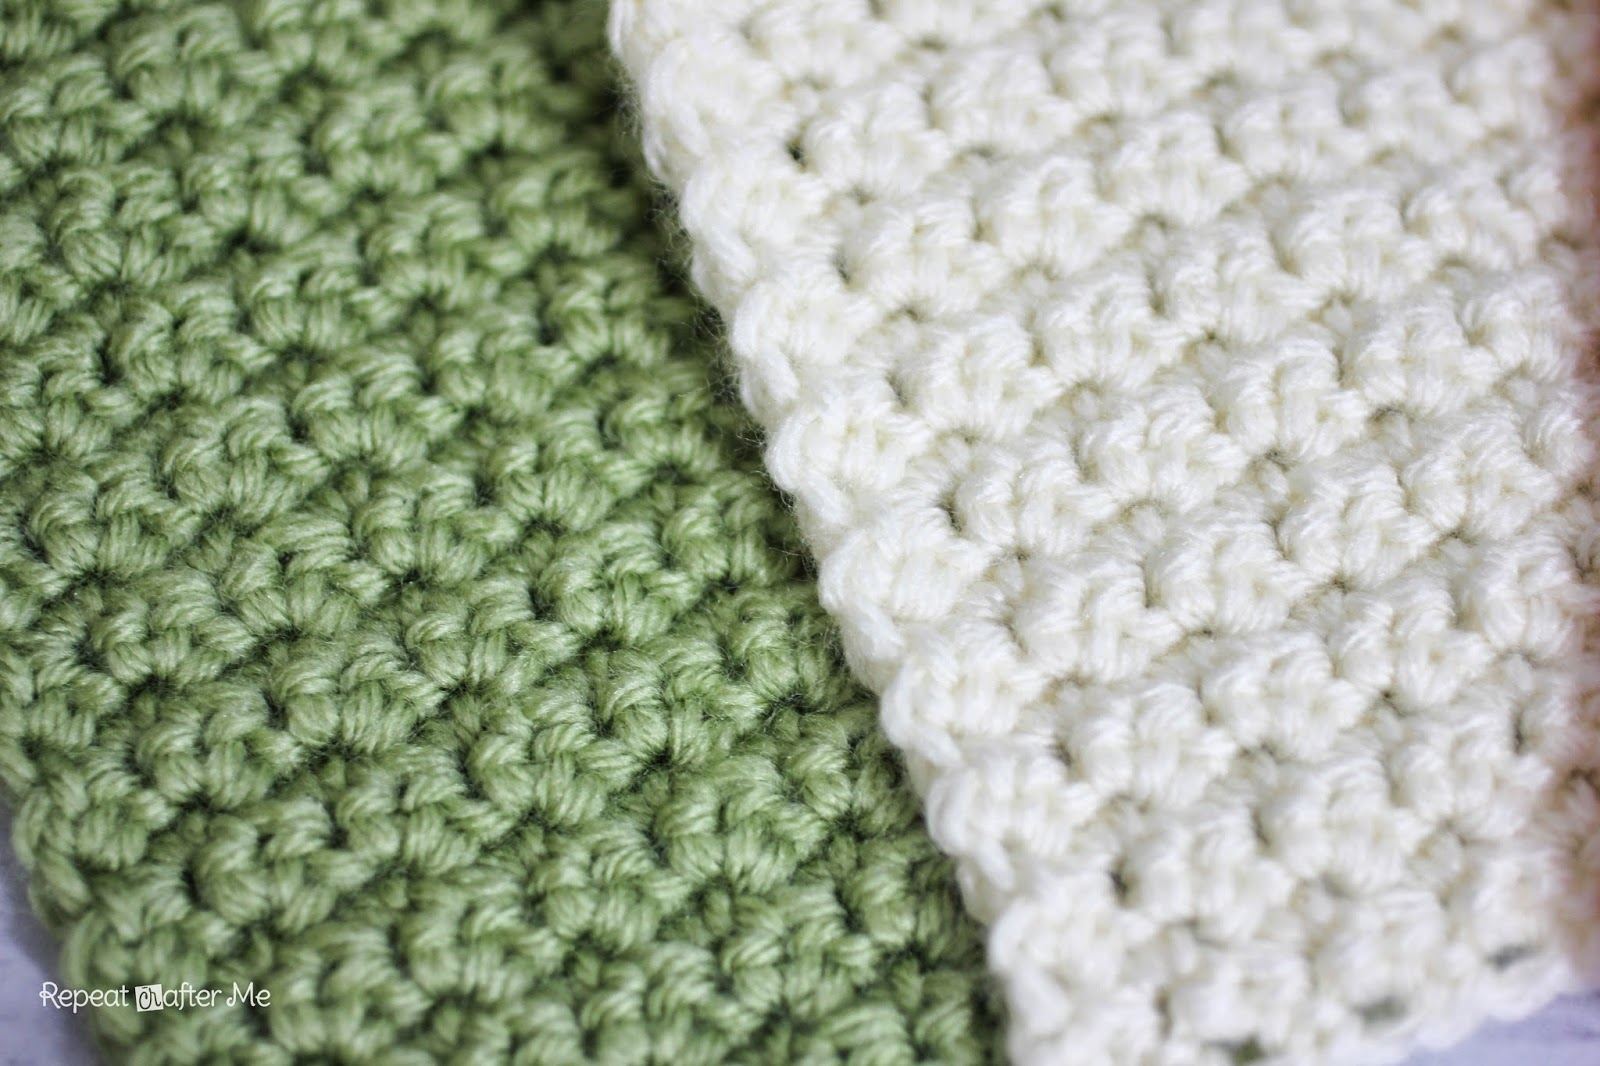 Crochet Stitches Grit : Repeat Crafter Me: Solid Granny Square Crochet Pattern (Grit Stitch)